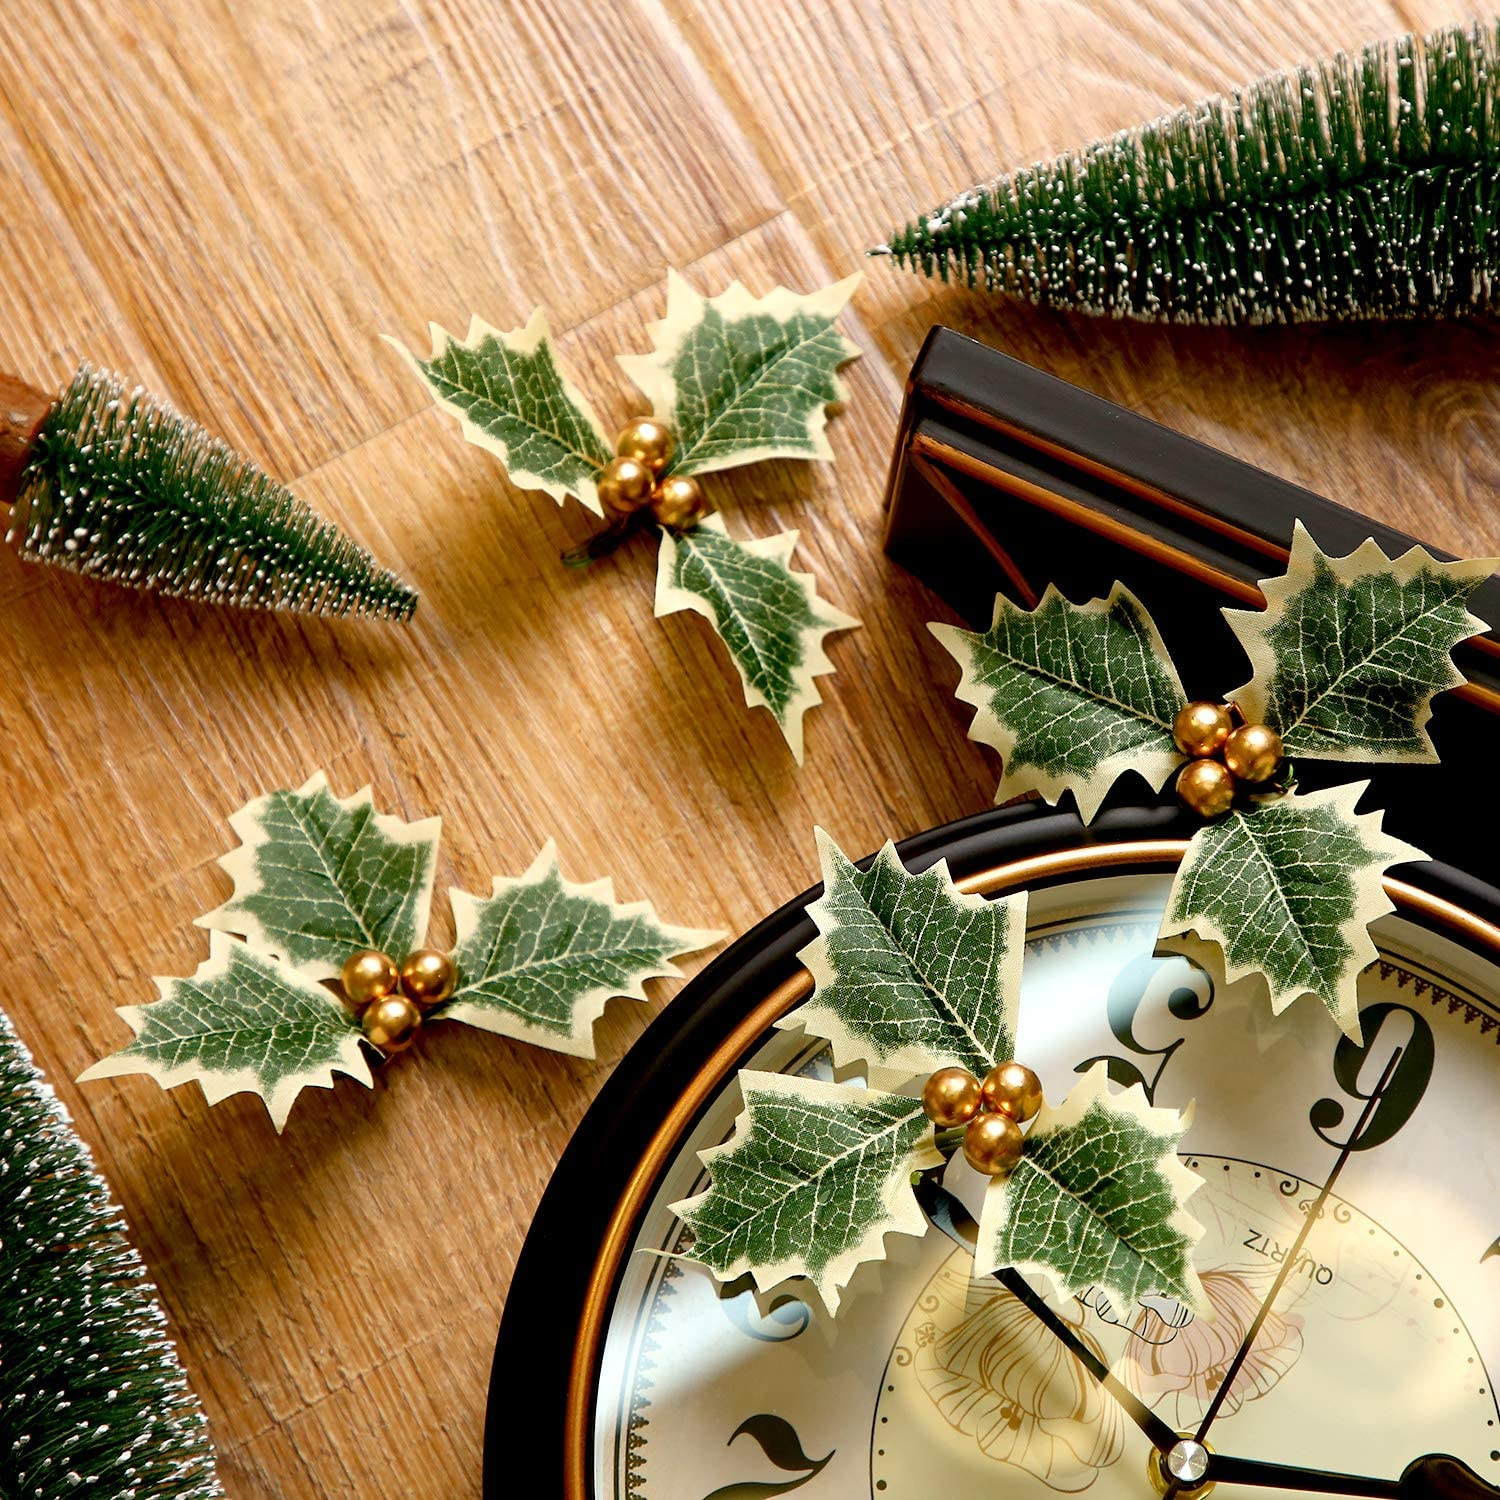 Gold Pangda 30 Pieces Artificial Holly Berry with Green Leaves for Christmas Wreath Arrangement Cake Toppers Craft Wedding Party Decorations